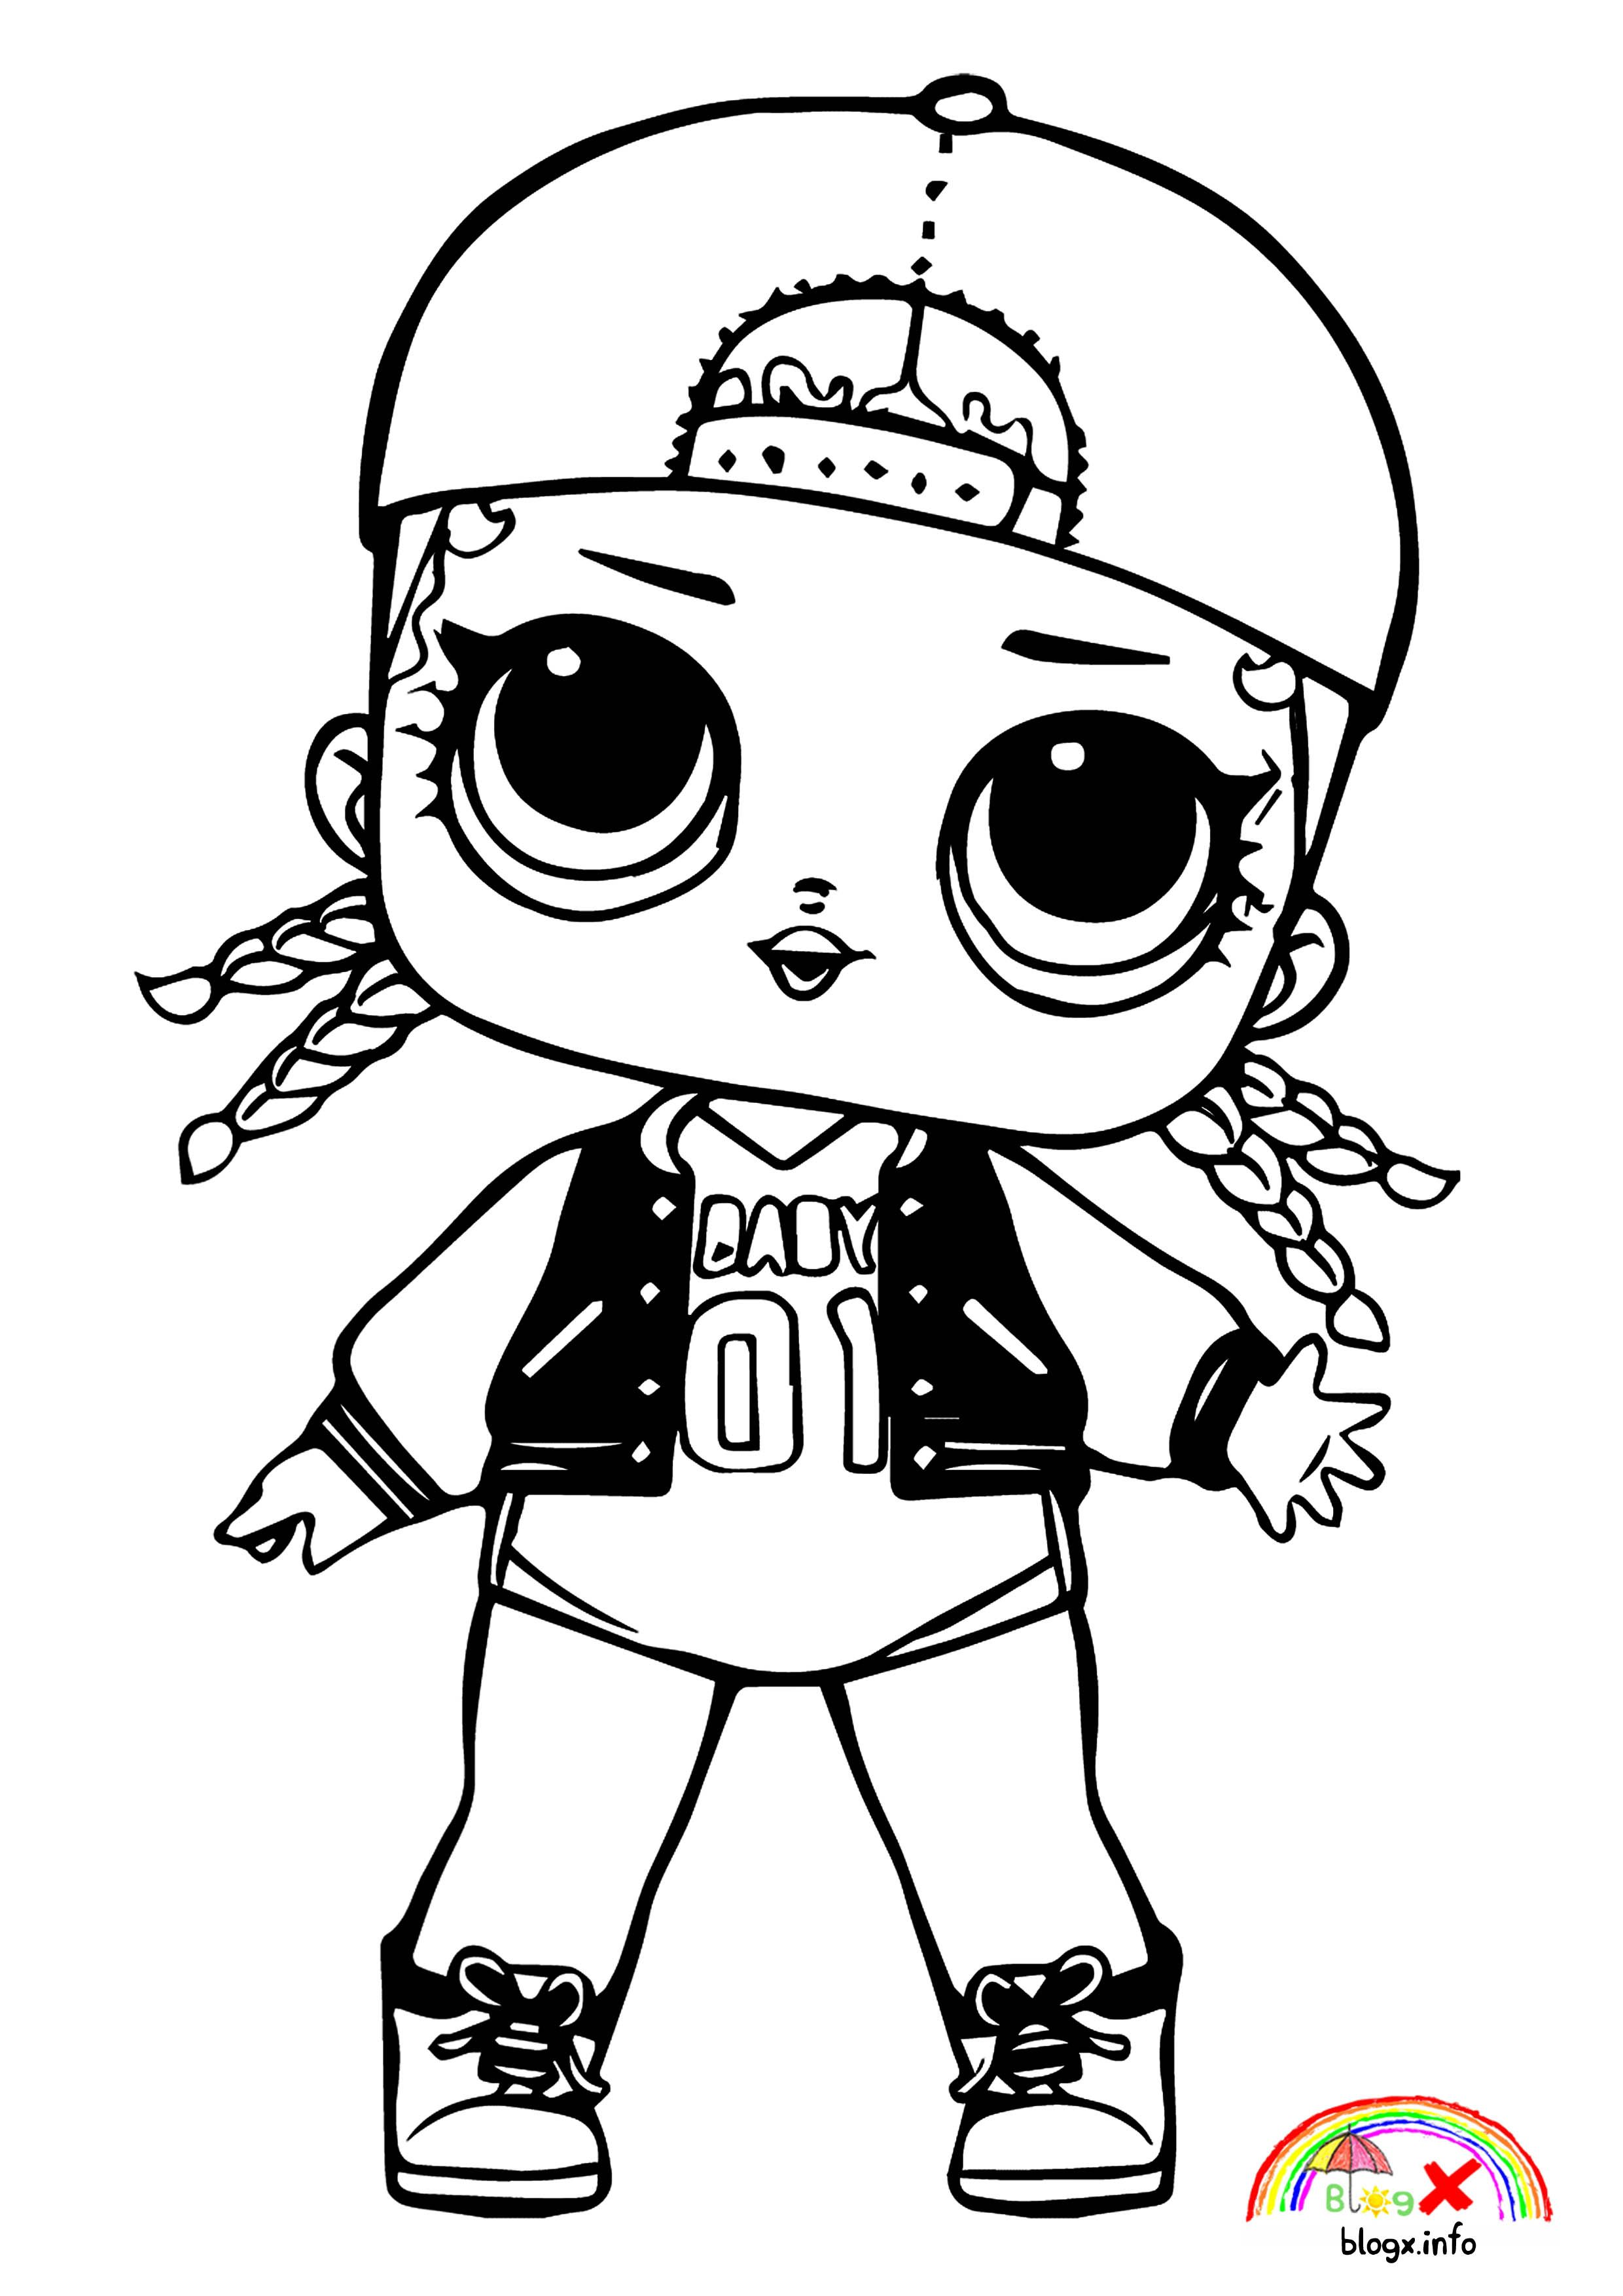 Lol Dolls Special Music Series Coloring Page Cool Coloring Pages Lol Dolls Coloring Books